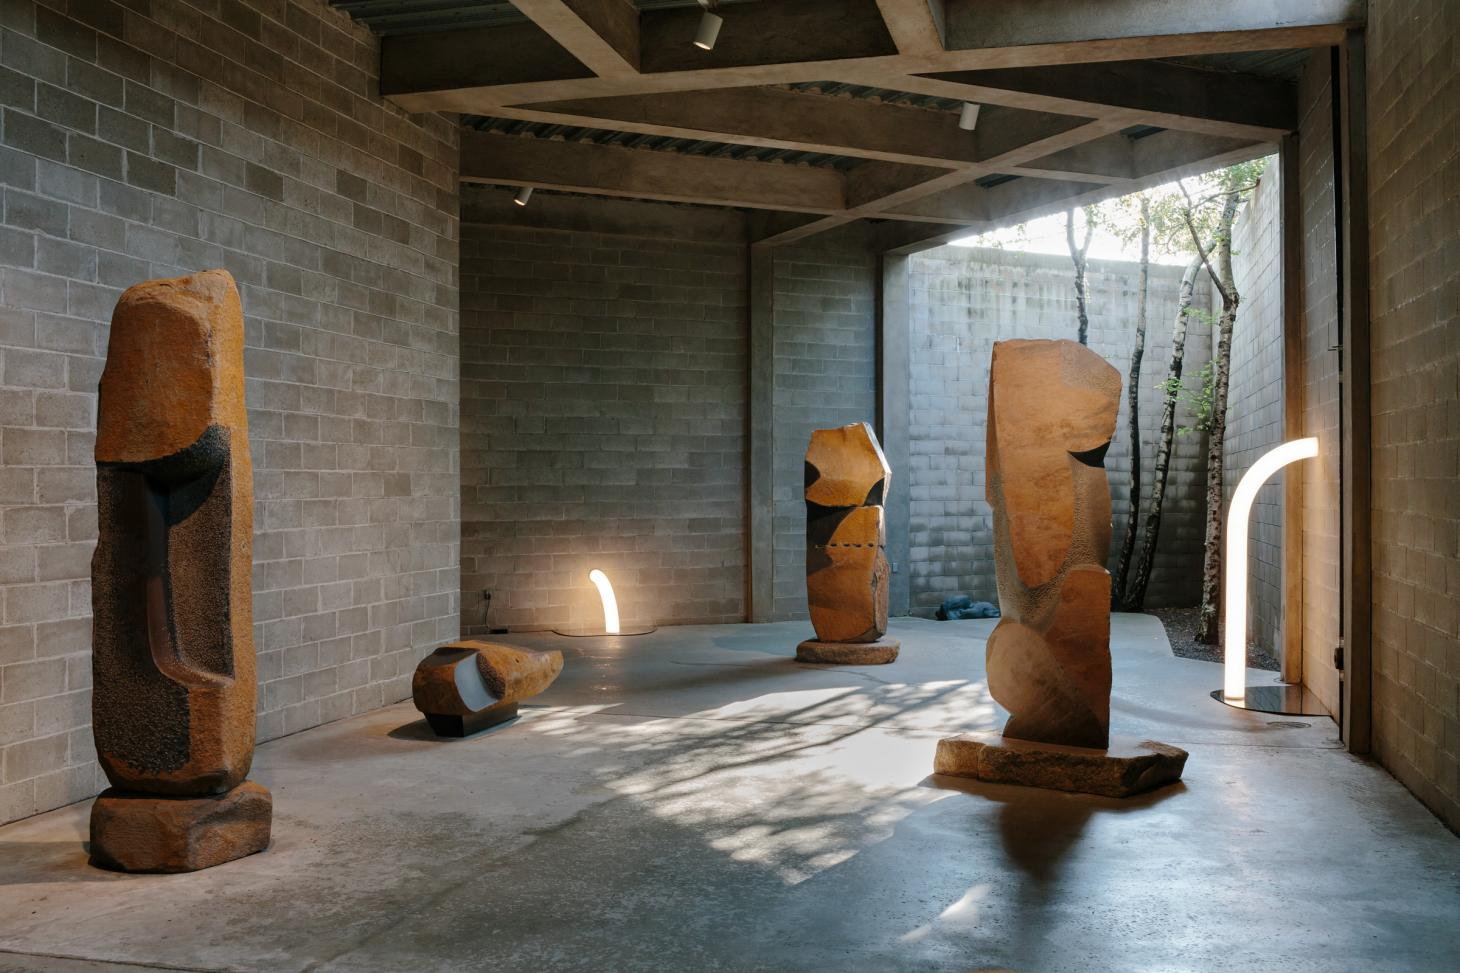 Noguchi and Objects of Common Interest art works